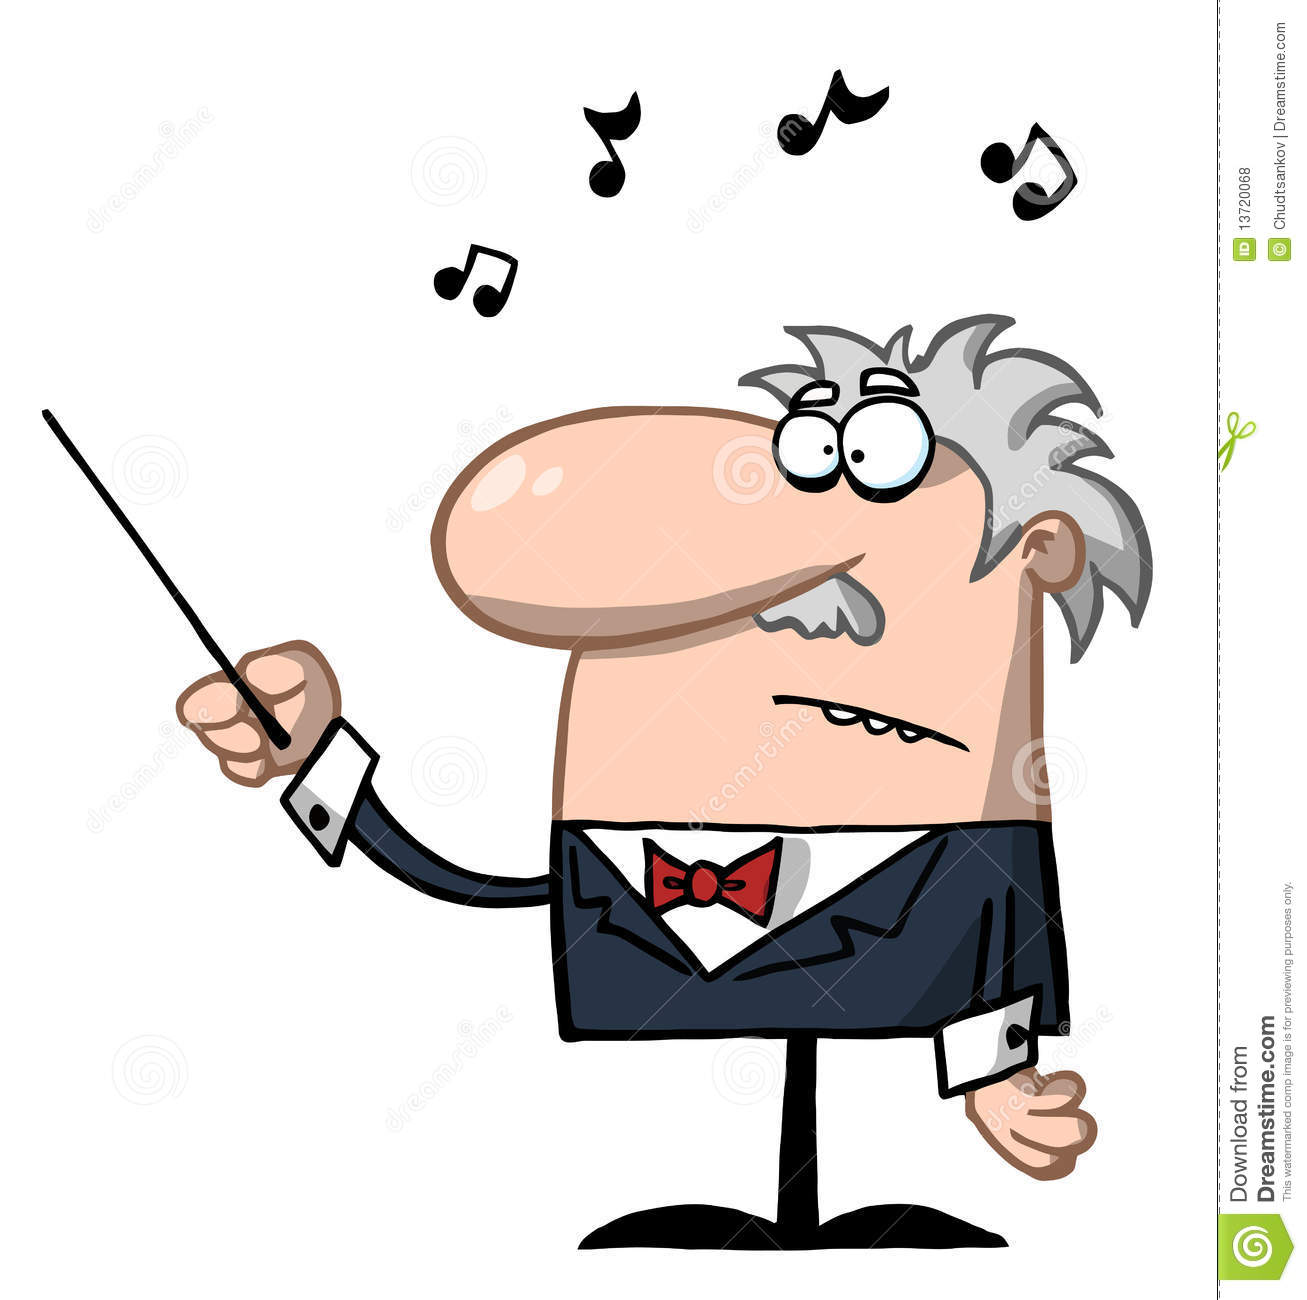 Orchestra Conductor Holds Baton Royalty Free Stock Photos.